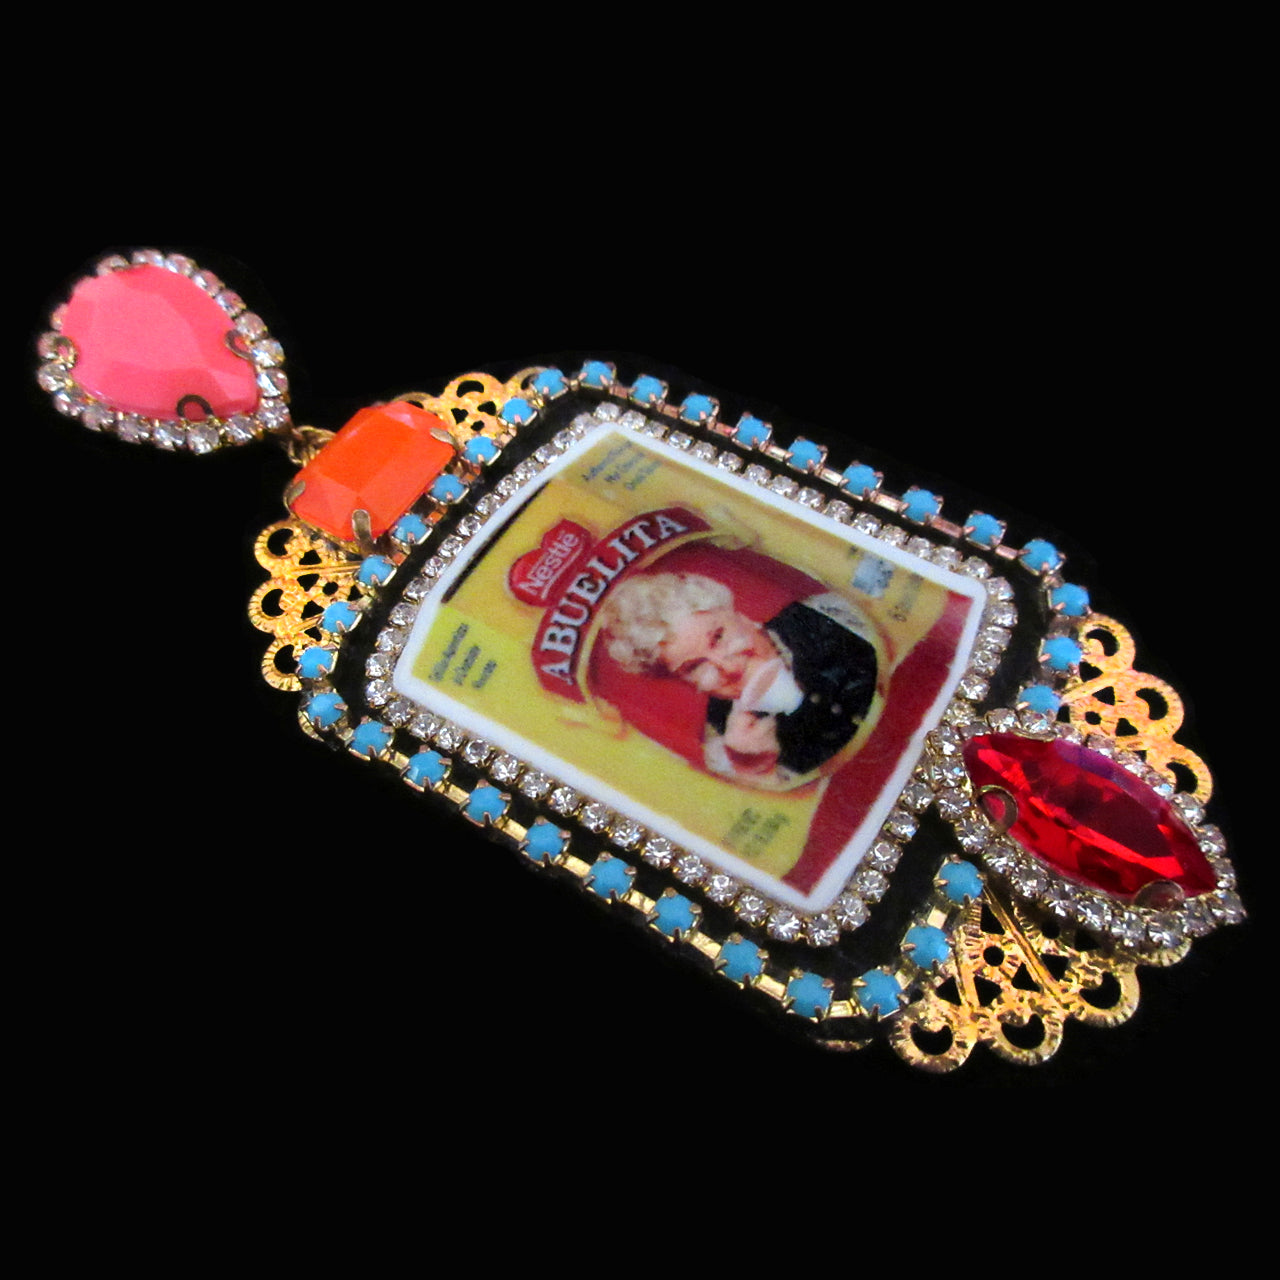 mouchkine jewelry earrings, an abuelita chic picture with red, pink and orange crystals. A luxury haute couture creation.